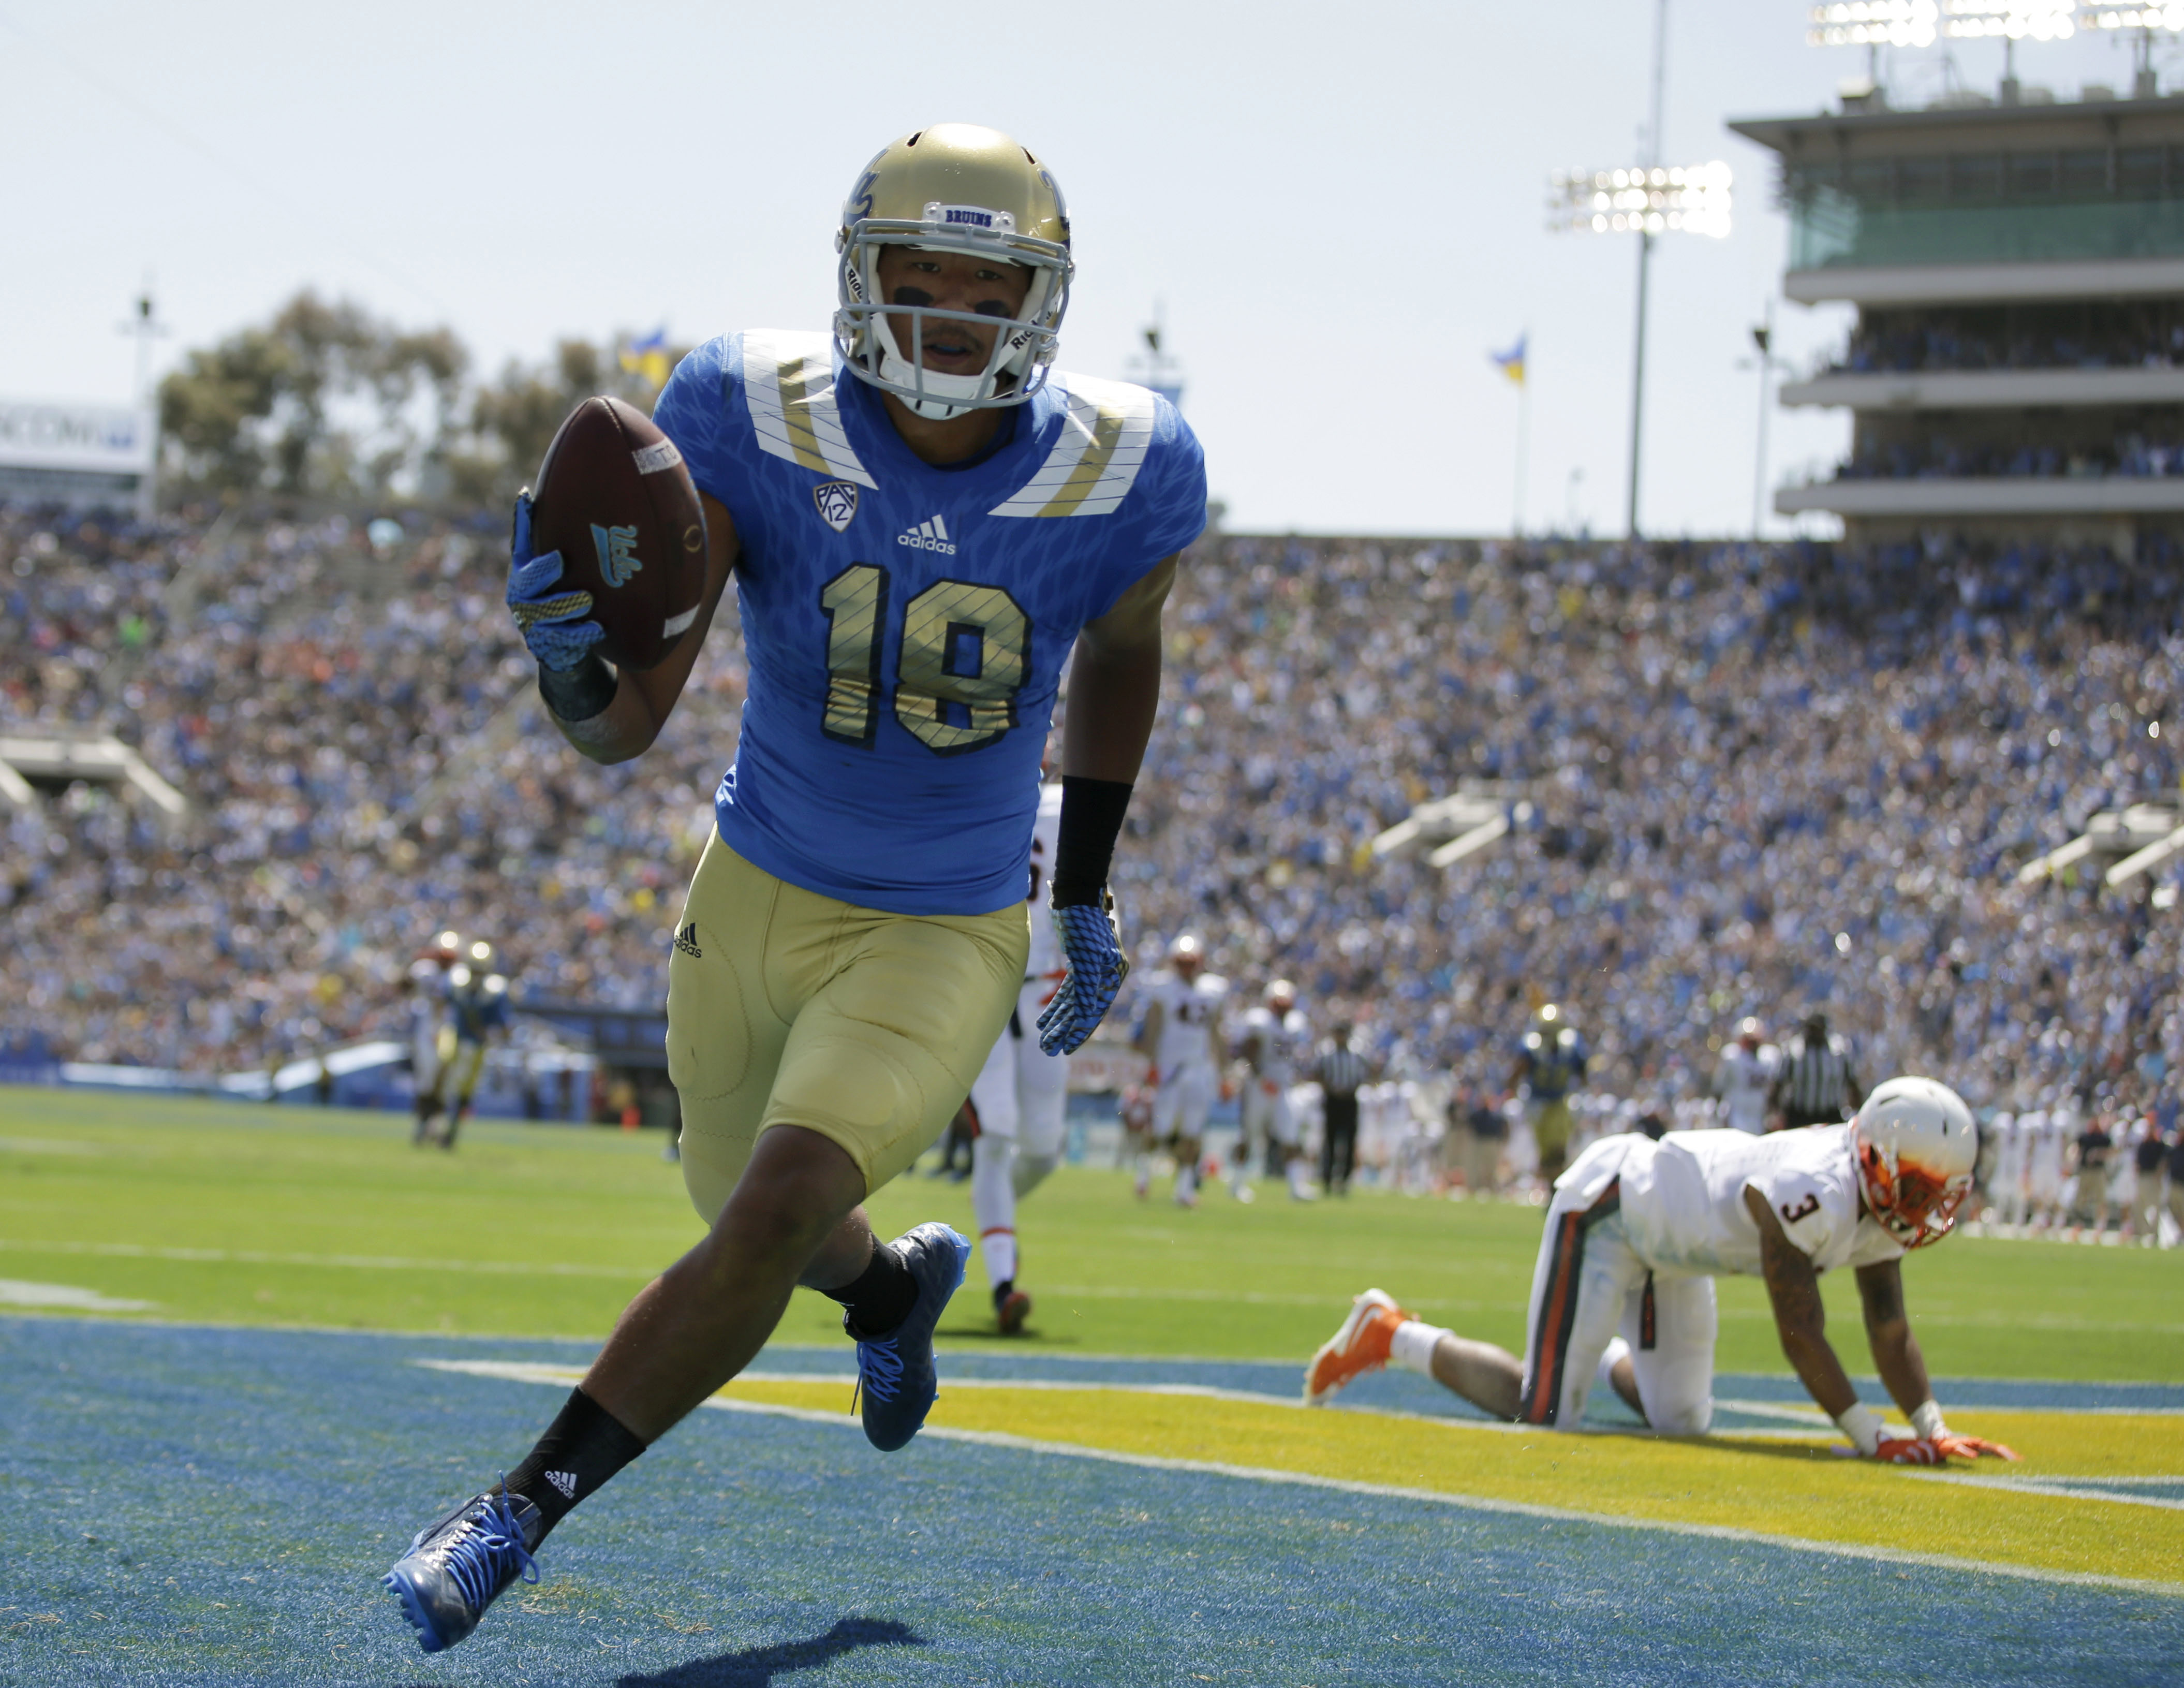 UCLA wide receiver Thomas Duarte scores a touchdown during the first half of an NCAA college football game against Virginia at the Rose Bowl, Saturday, Sept. 5, 2015, in Pasadena, Calif. (AP Photo/Jae C. Hong)